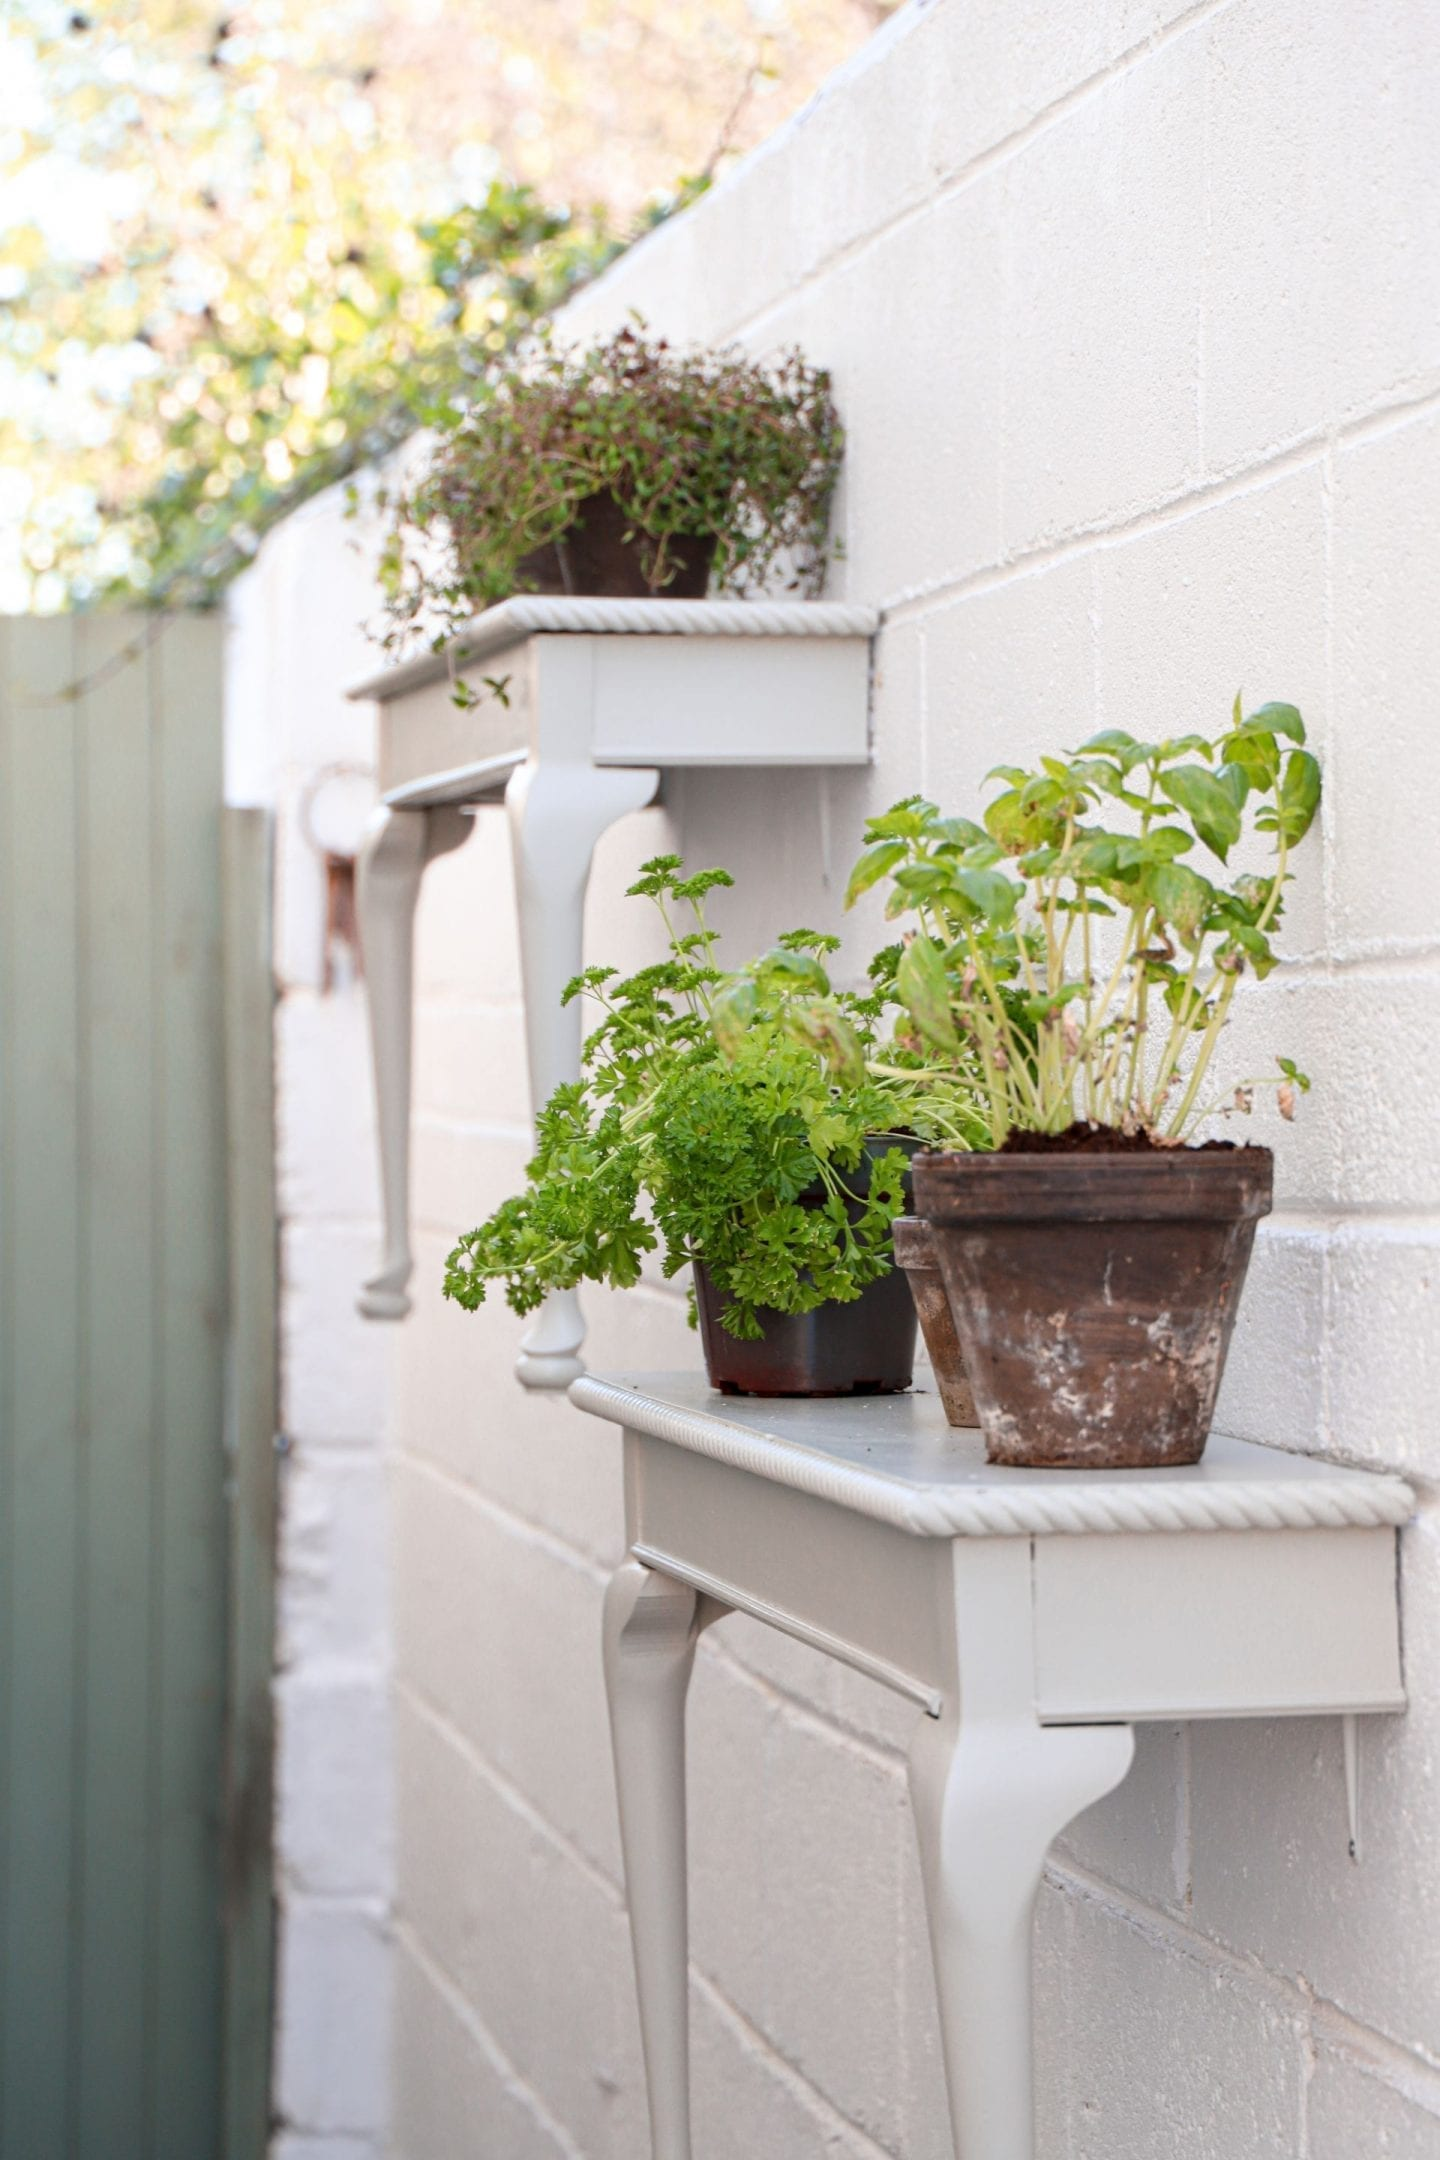 How to make the most of your garden during lockdown